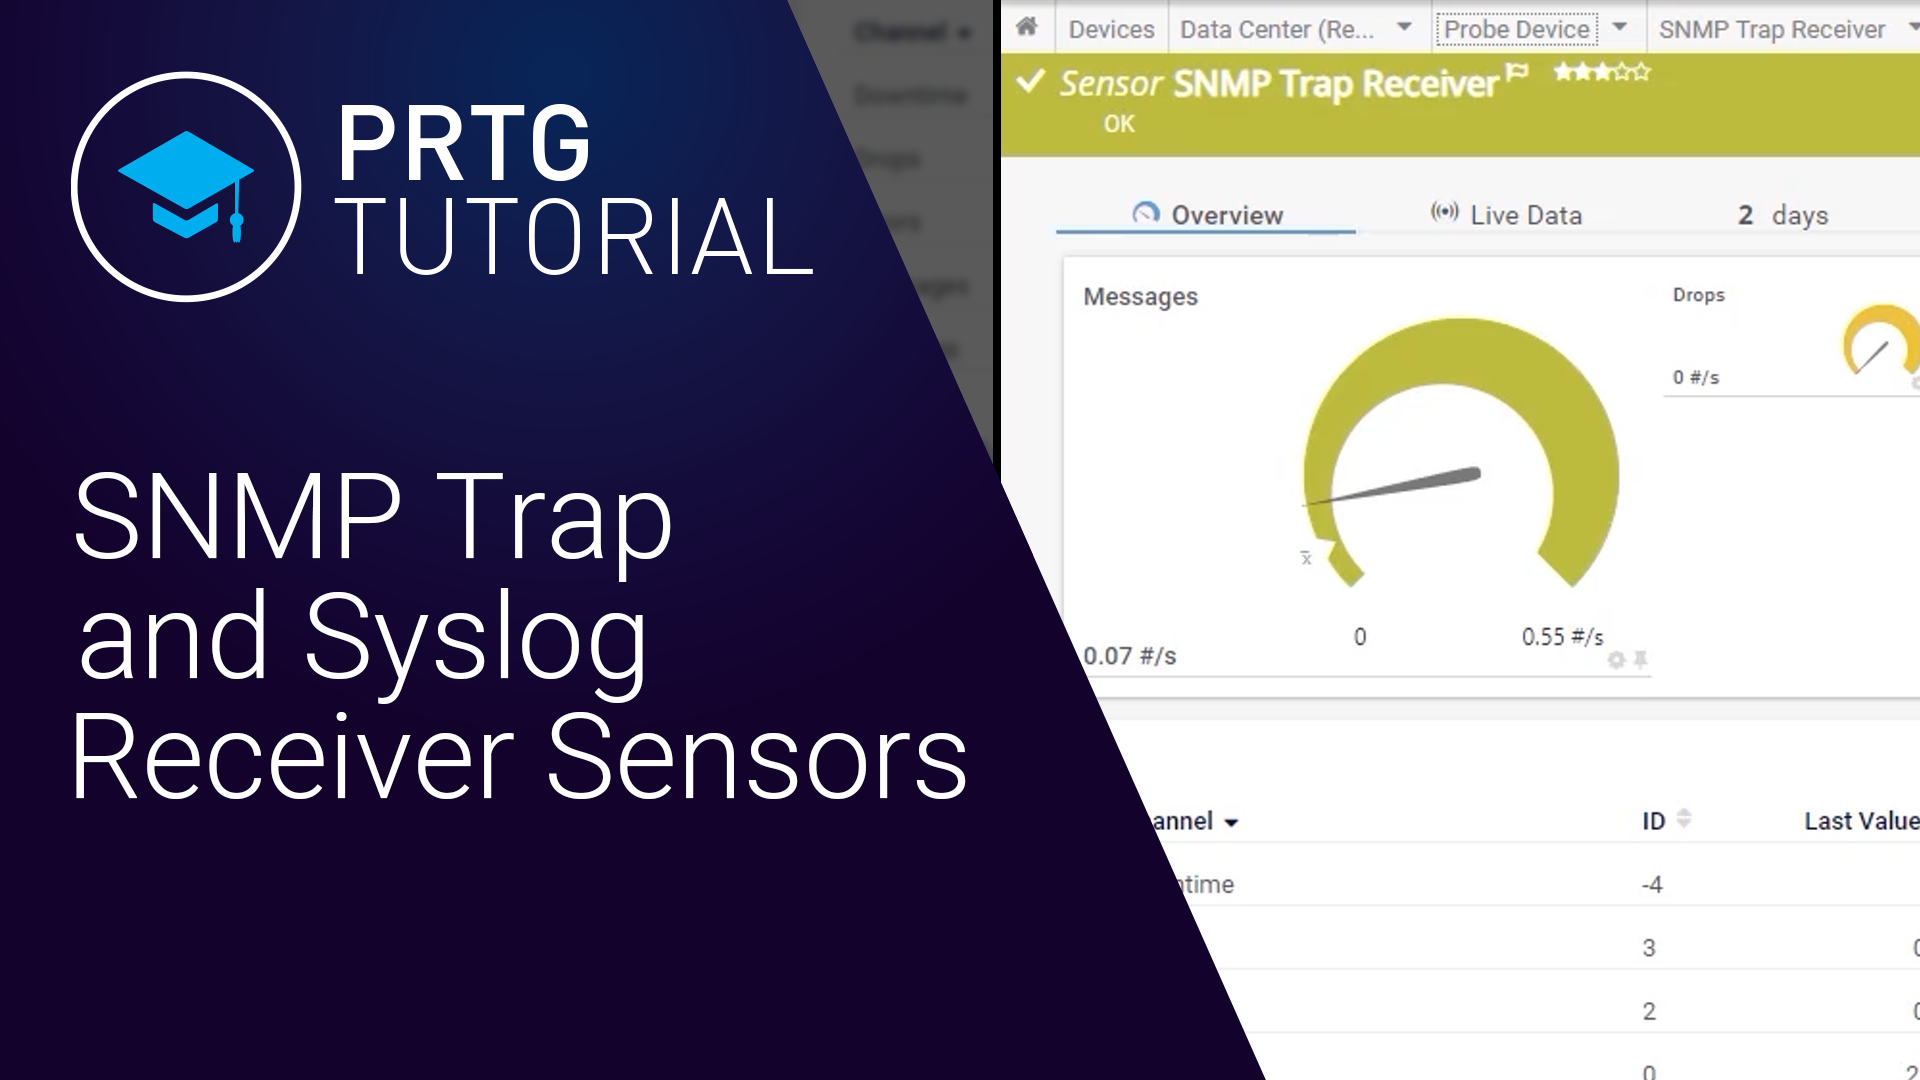 Video: PRTG - Trap and Syslog Receiver (Videos, Syslog)